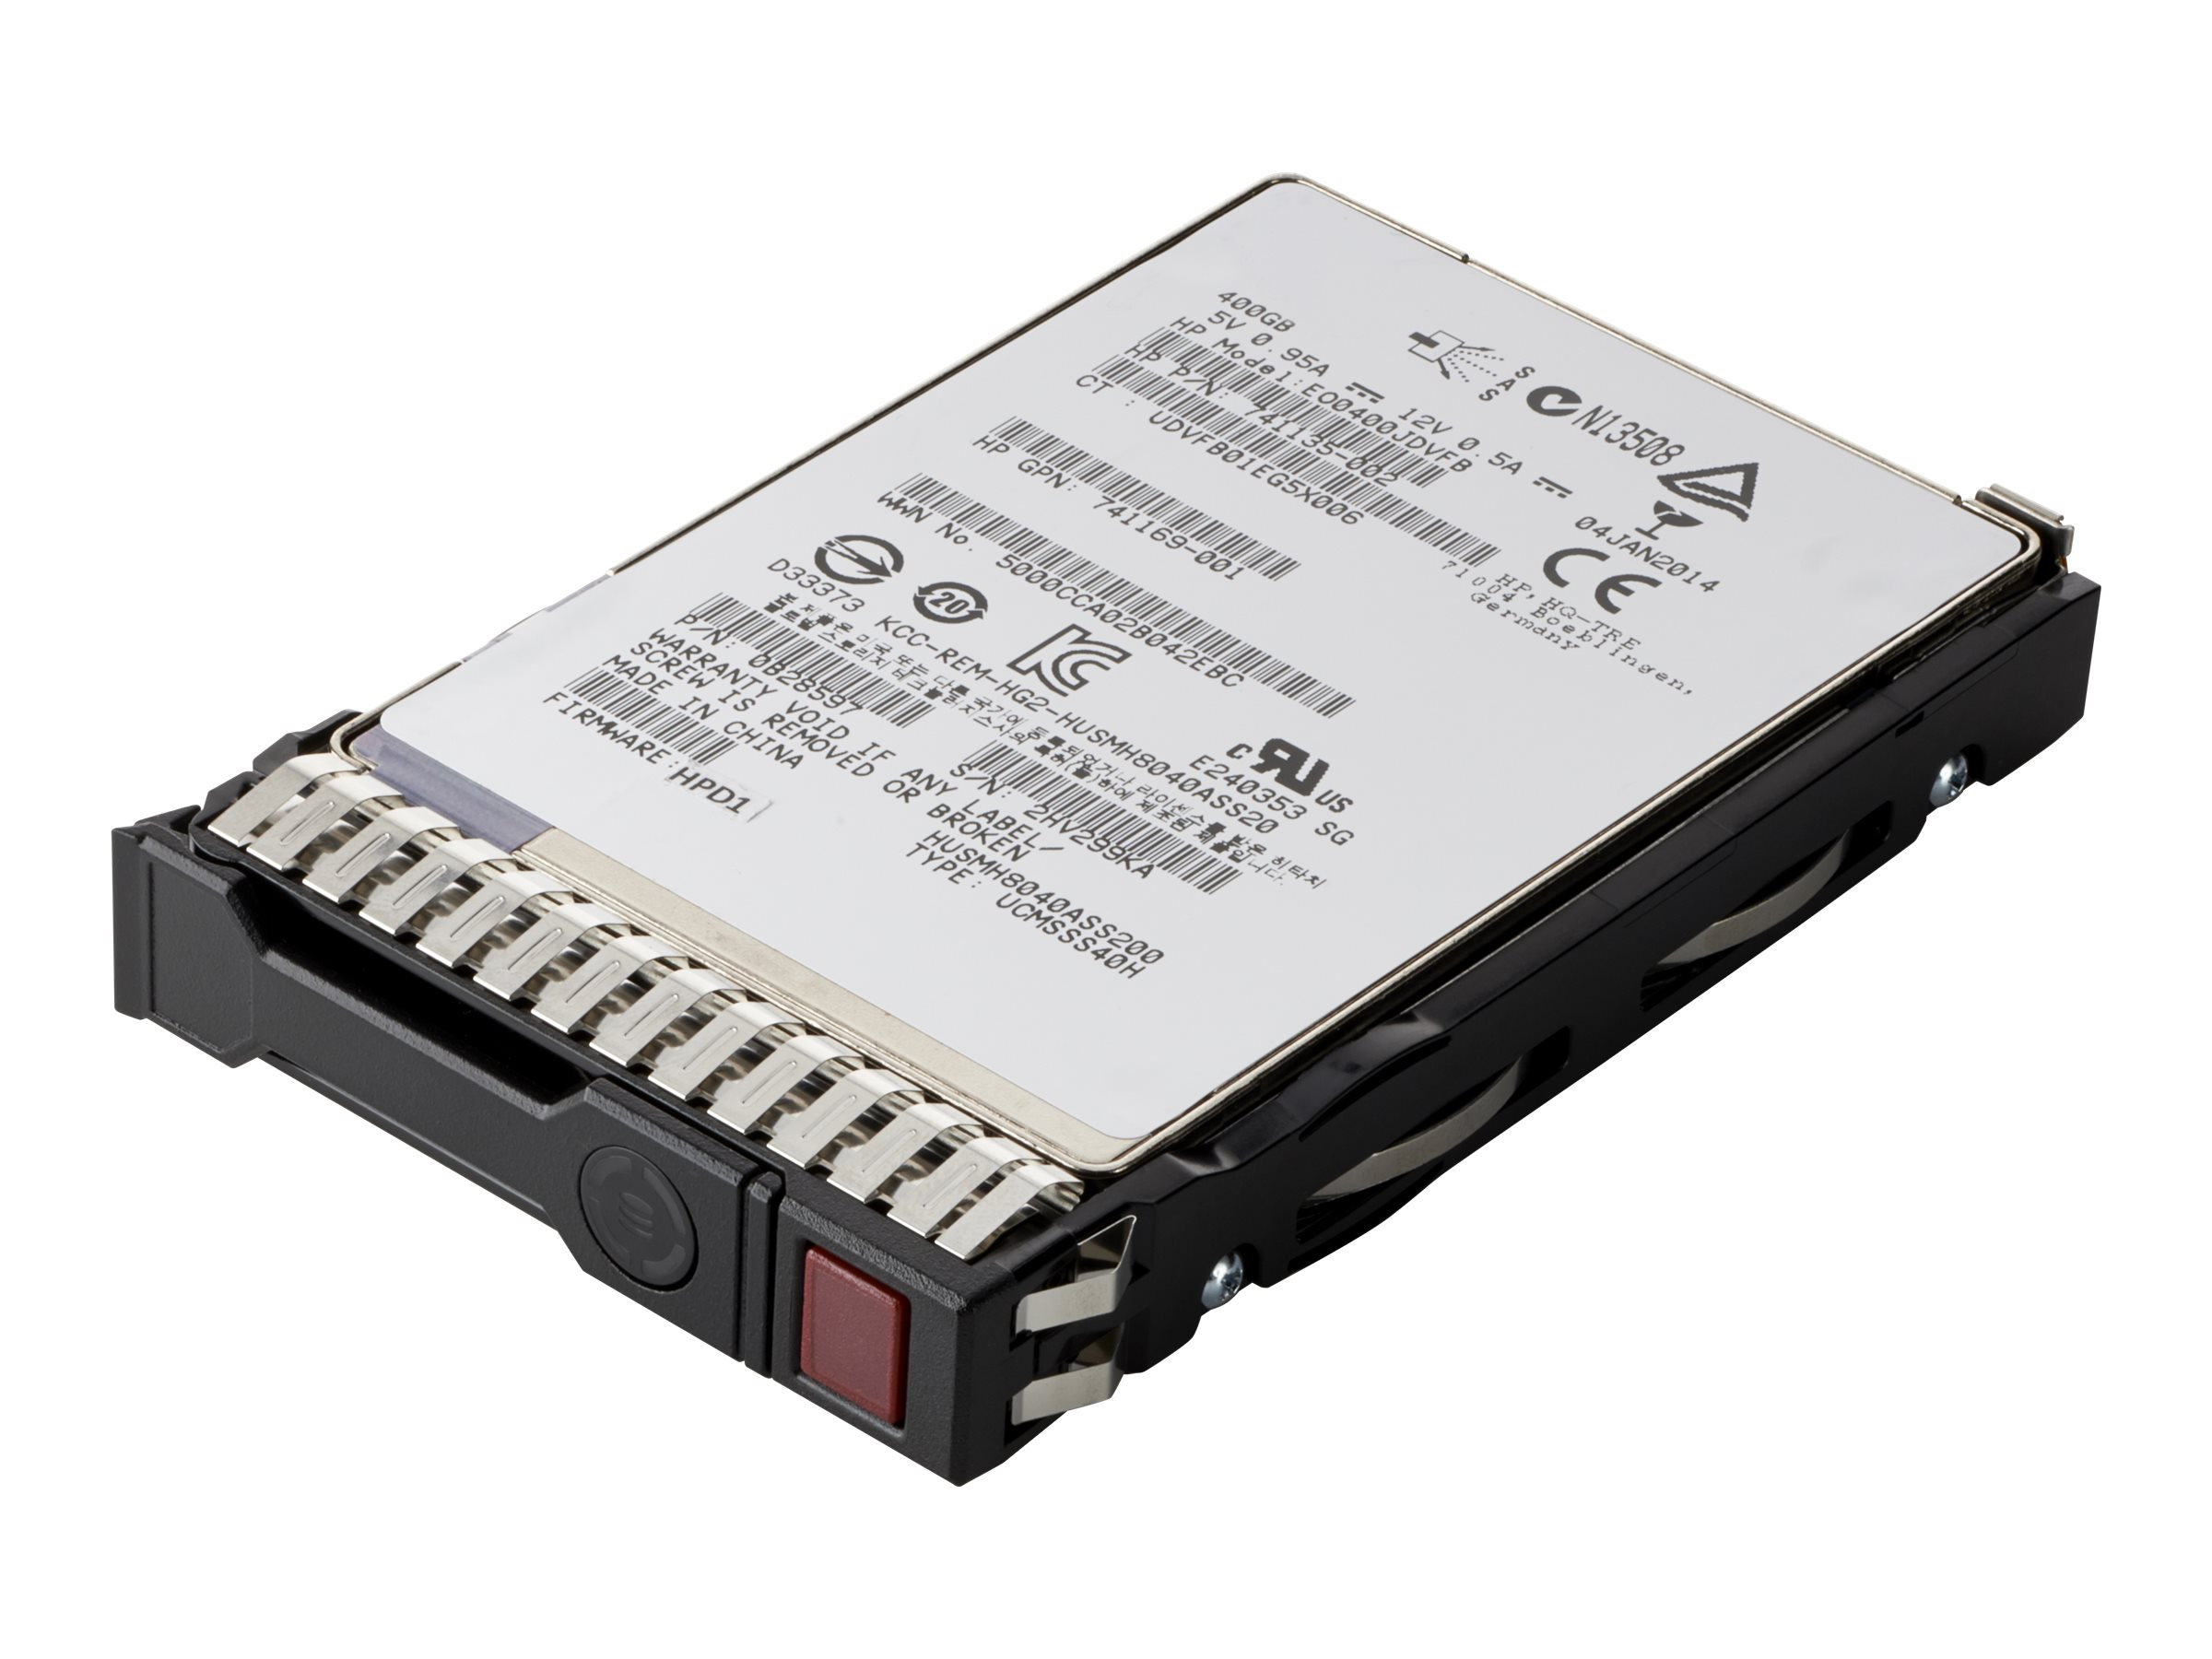 HPE Mixed Use - solid state drive - 3.84 TB - SATA 6Gb/s -